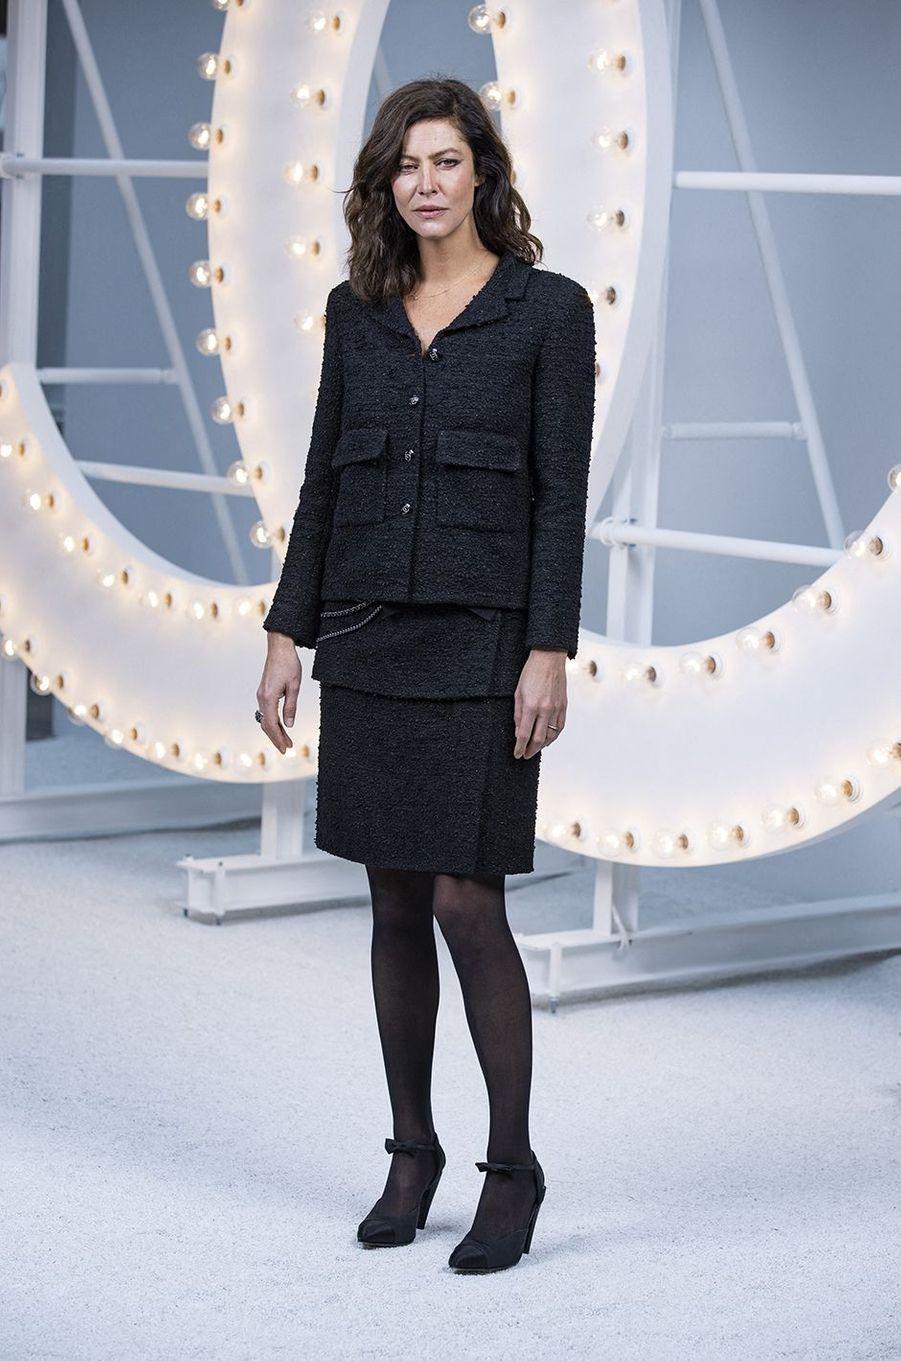 Anna Mouglalis au défilé Chanel lors de la Fashion Week à Paris le 6 octobre 2020